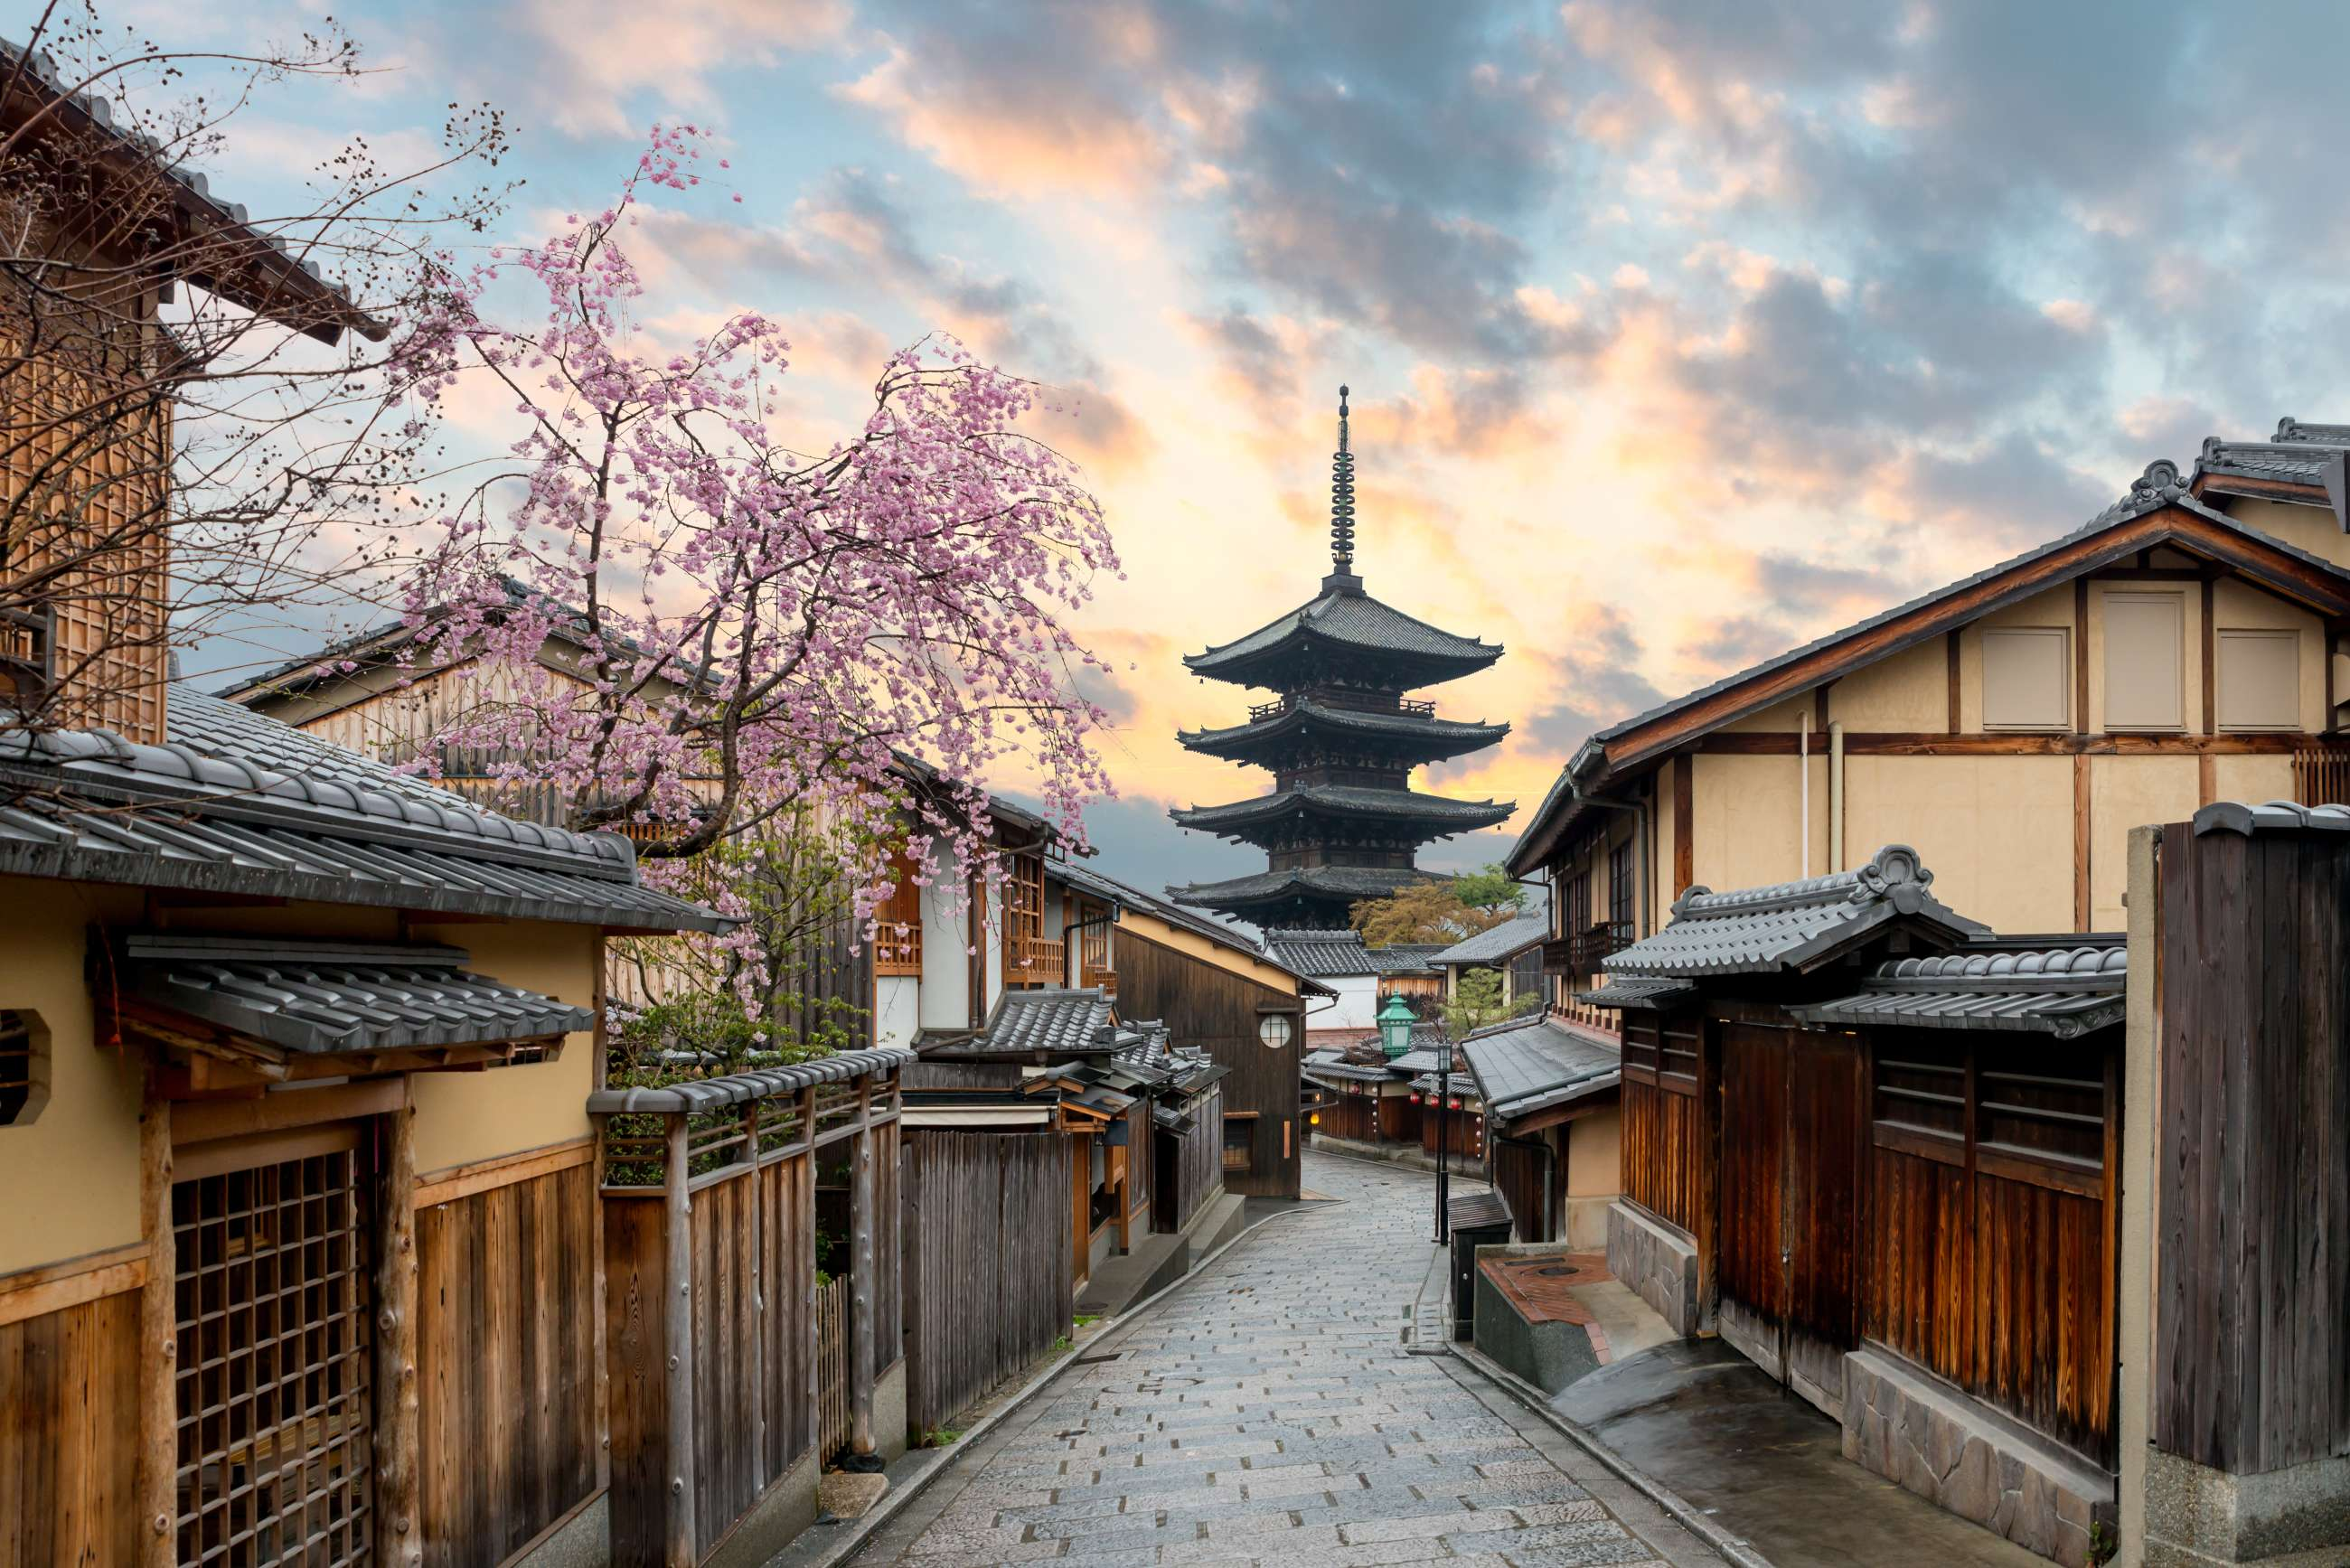 Kyoto Private Tours - Small Group Guided Tour by Local Experts - Context  Travel